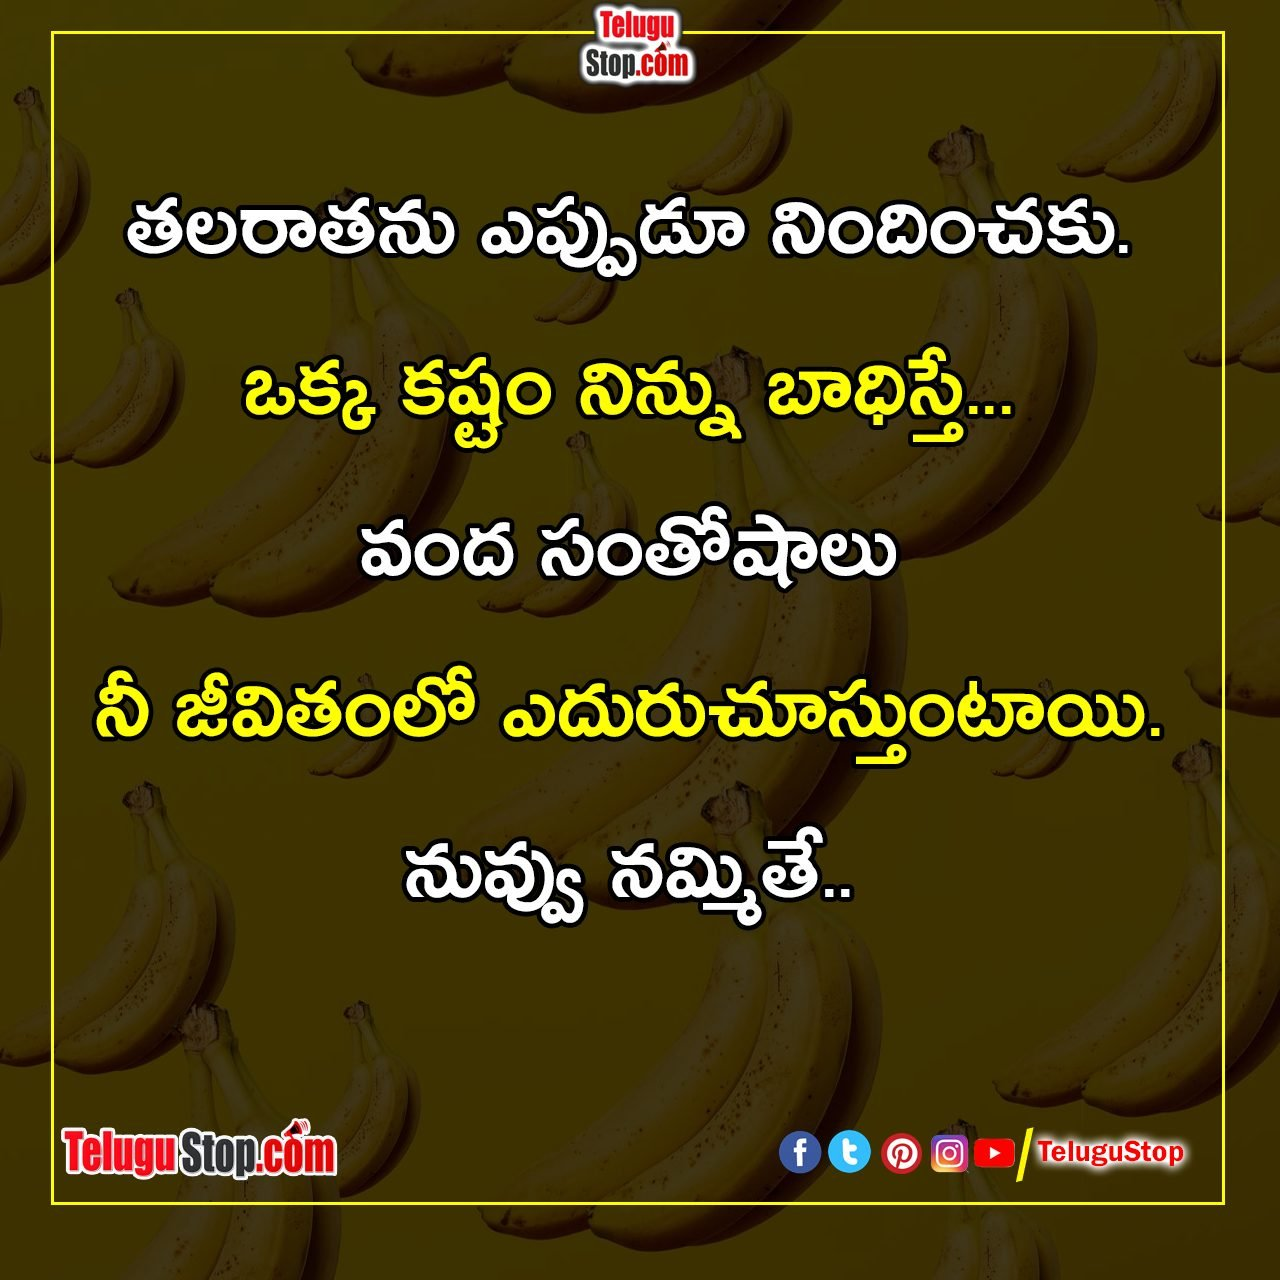 Telugu Bhagavad Gita Inspirational Quotes, Confidence Is Life Inspirational Quotes, Effort Is Not In Vain Inspirational Quotes, Never Blame Fate Inspirational Quotes-Telugu Daily Quotes - Inspirational/Motivational/Love/Friendship/Good Morning Quote